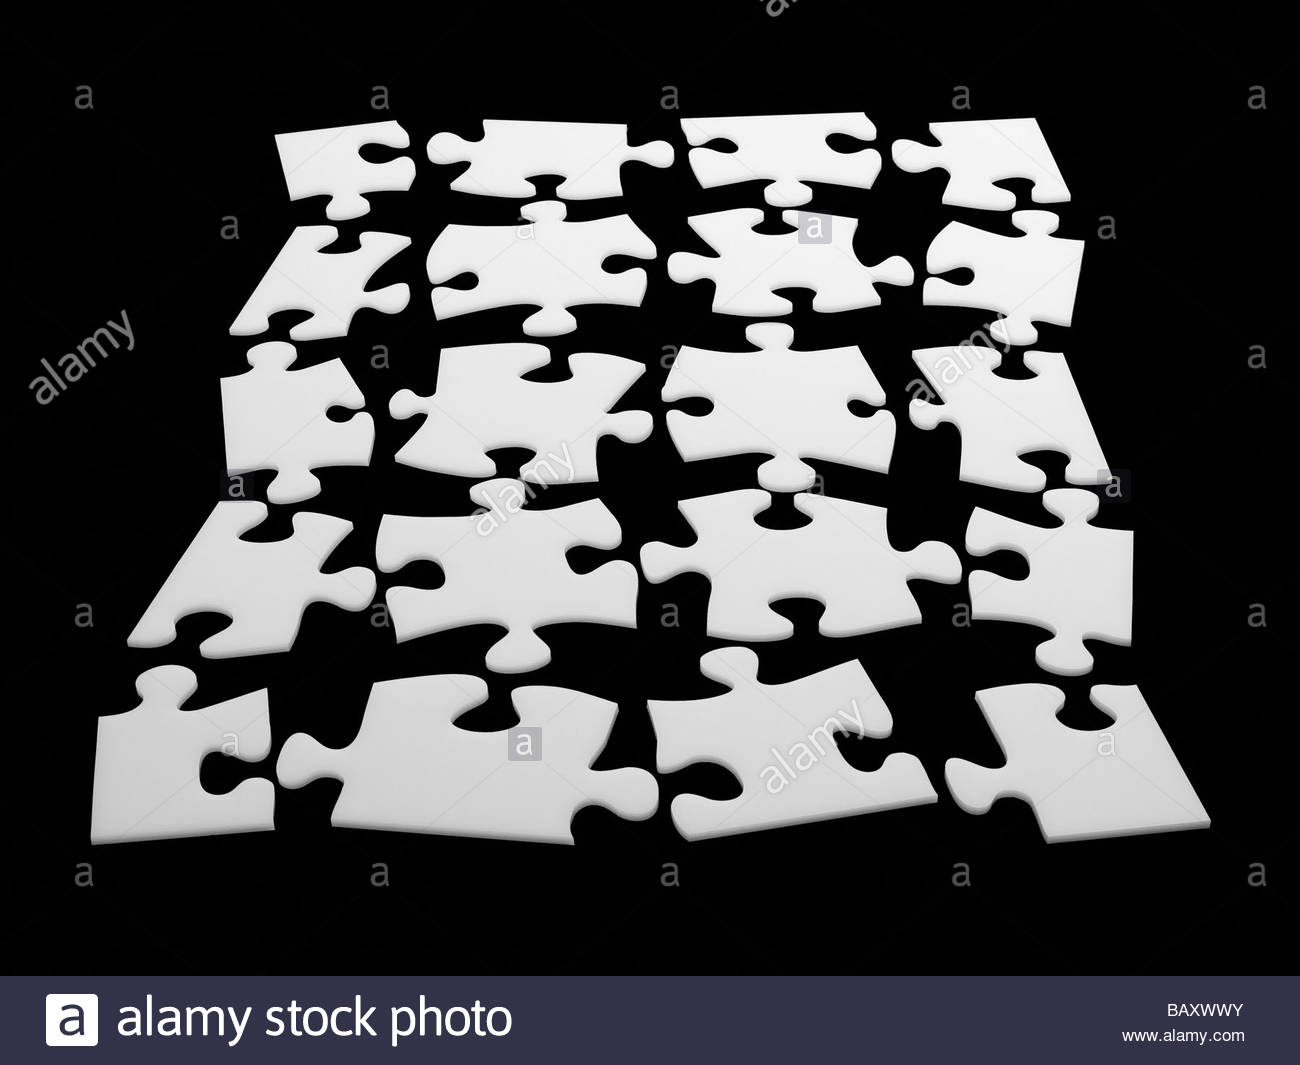 Individual puzzle pieces in puzzle shape - Stock Image